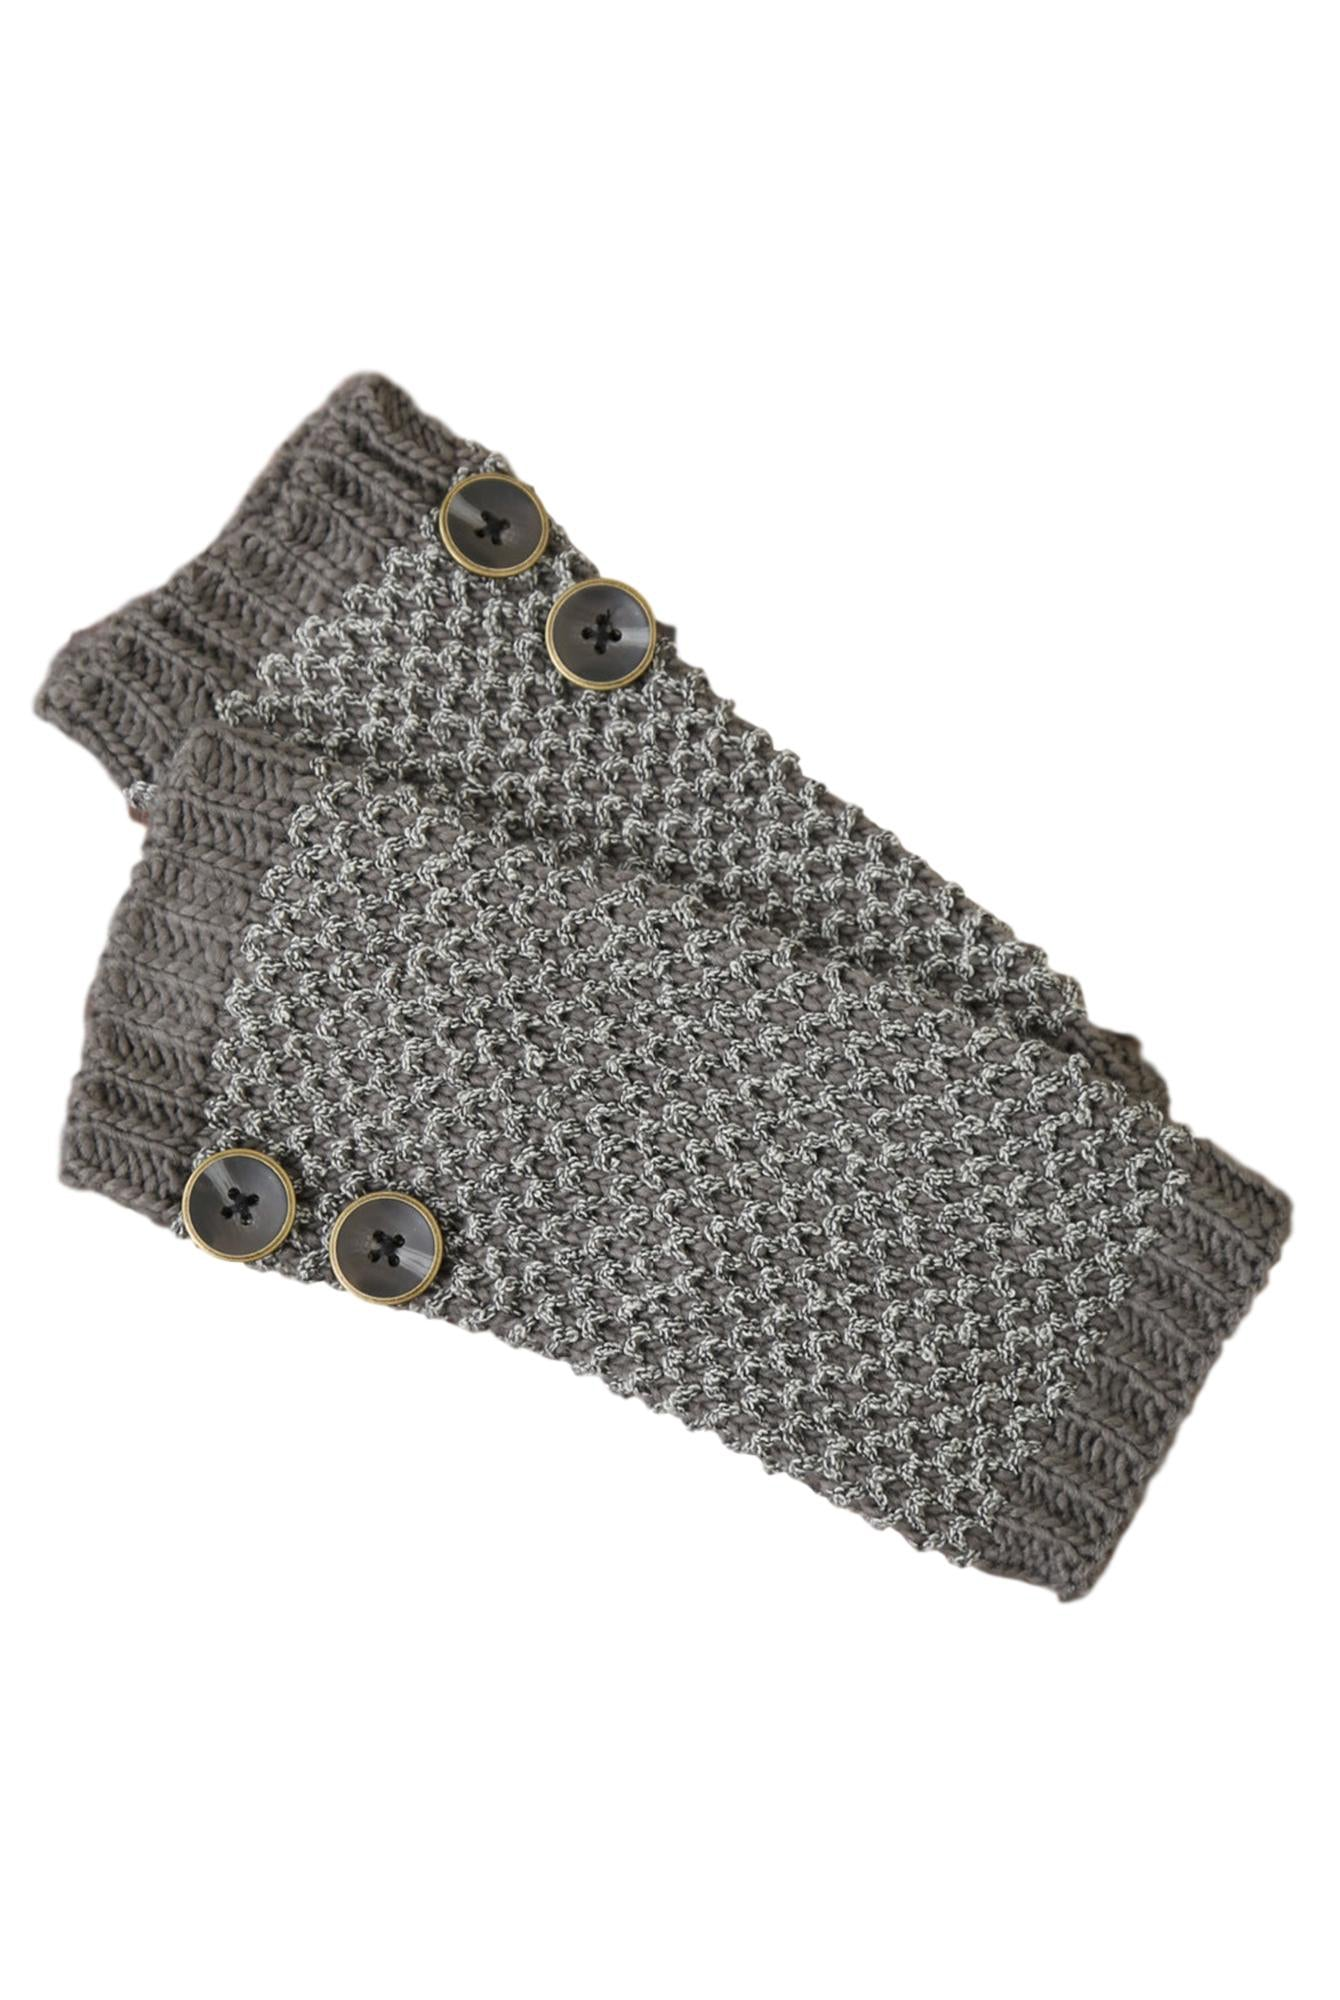 Simply Noelle Bumble Wrist Warmers W/ Buttons